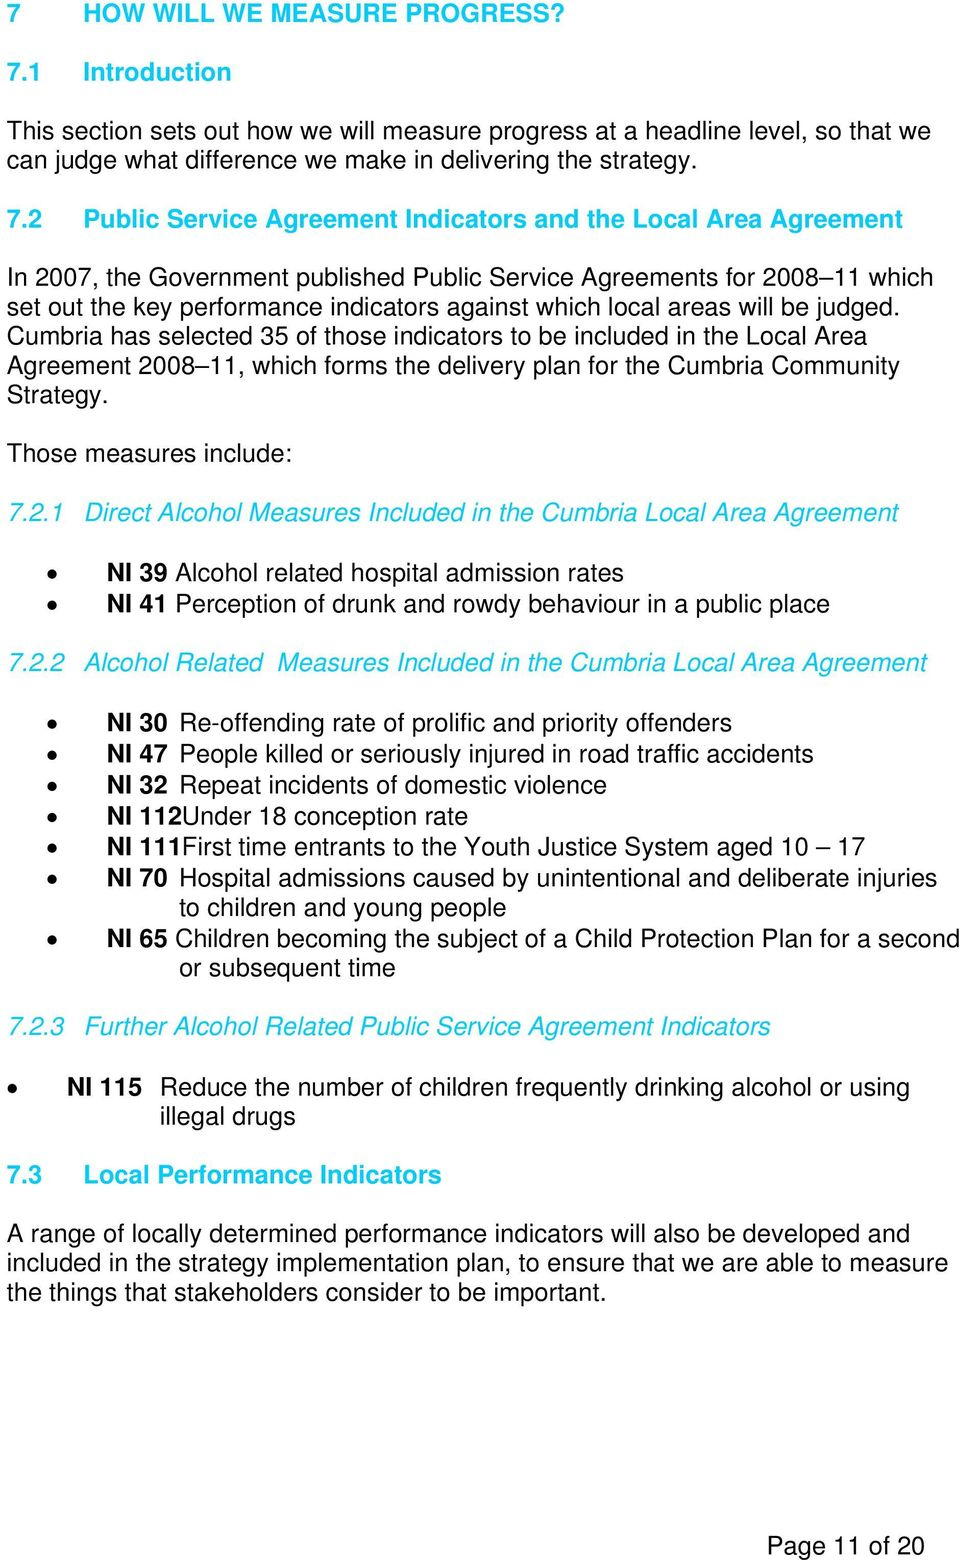 2 Public Service Agreement Indicators and the Local Area Agreement In 2007, the Government published Public Service Agreements for 2008 11 which set out the key performance indicators against which